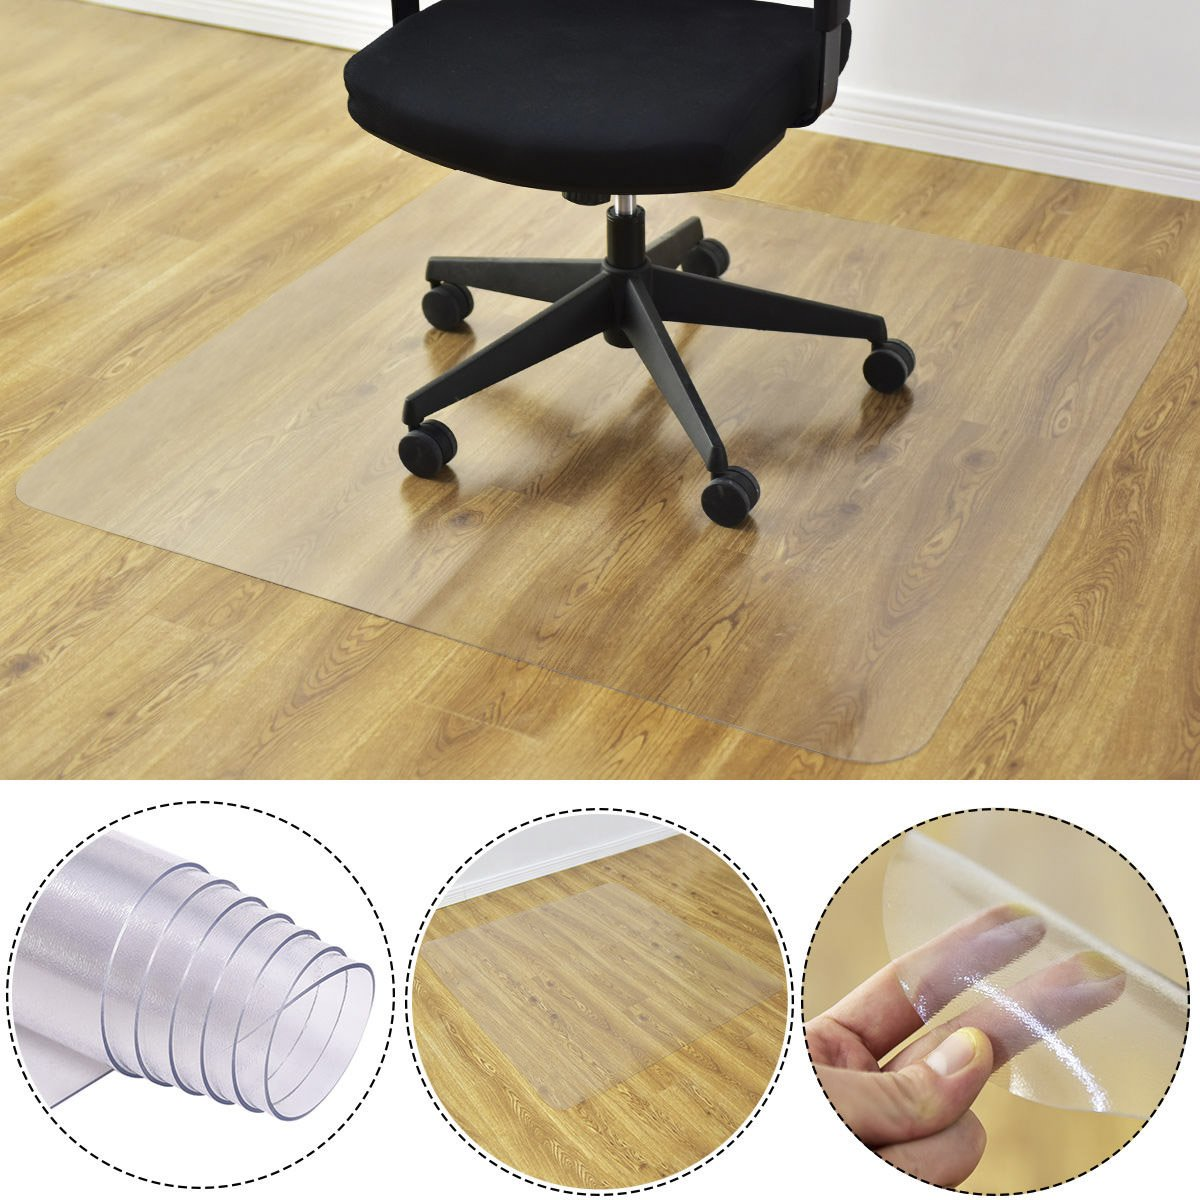 Goplus PVC Chair Mat for Hardwood Floor Clear Multi-Purpose Floor Protector for Office and Home Anti-Slip Floor Protective Mats (47'' x 47'') by Goplus (Image #2)